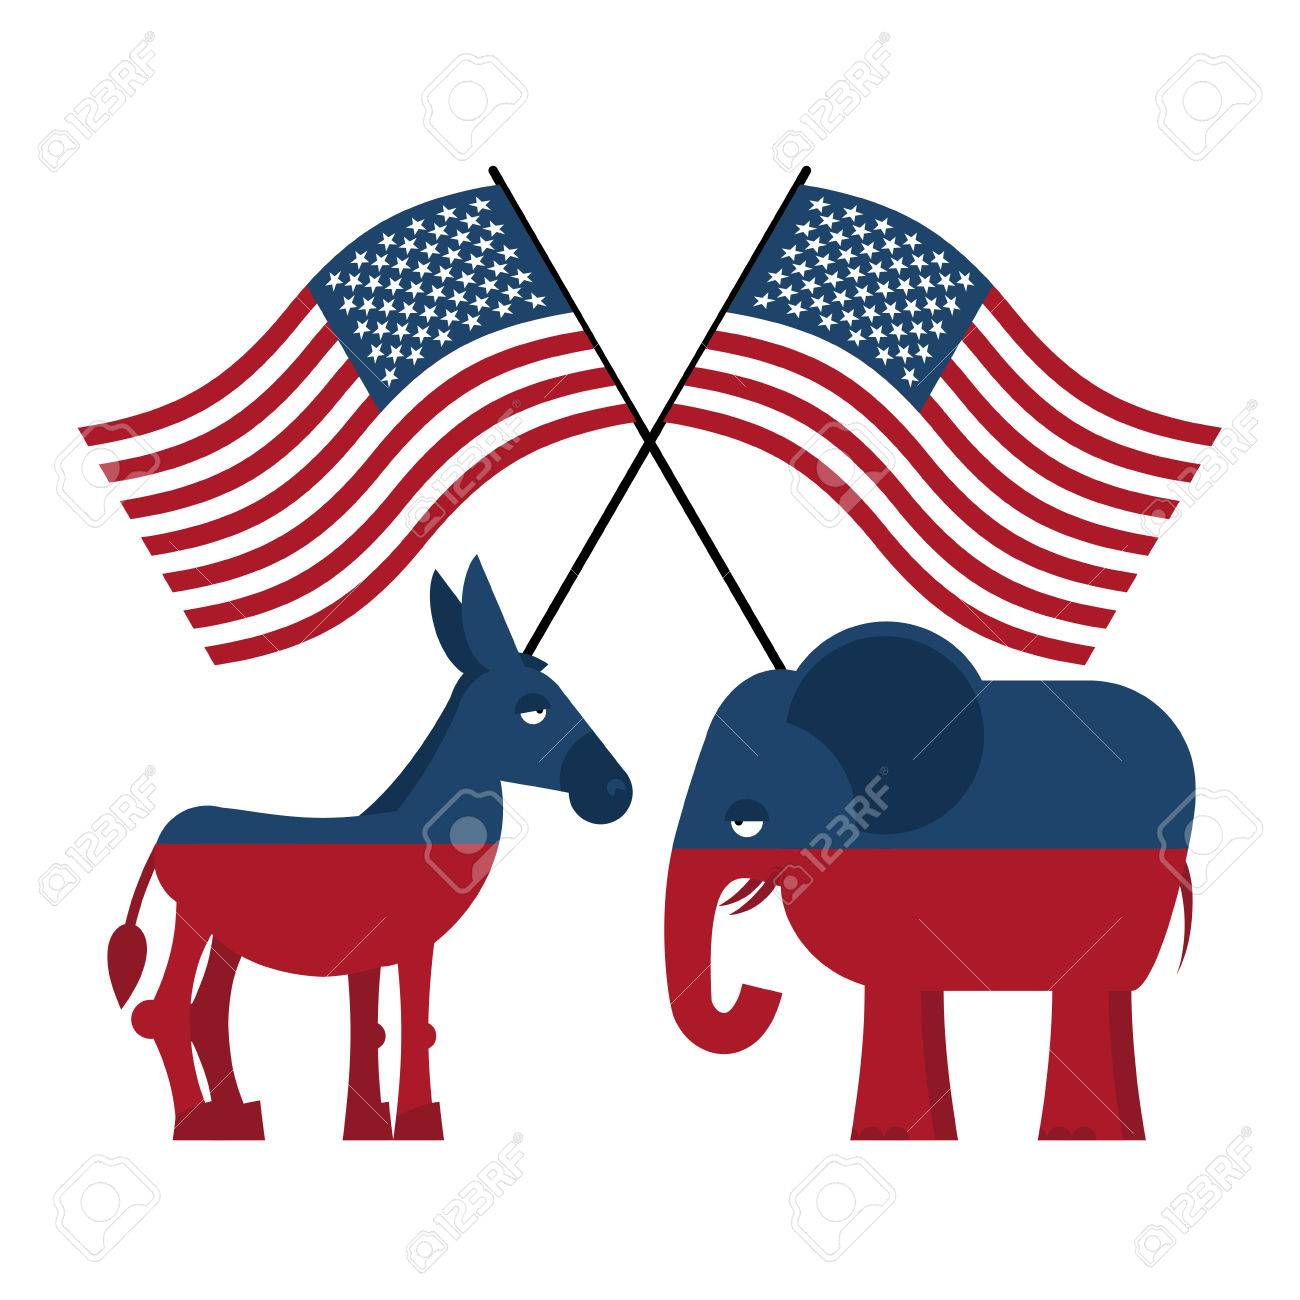 Elephant and donkey symbols of democrats and republicans symbols of democrats and republicans political parties in united states biocorpaavc Images